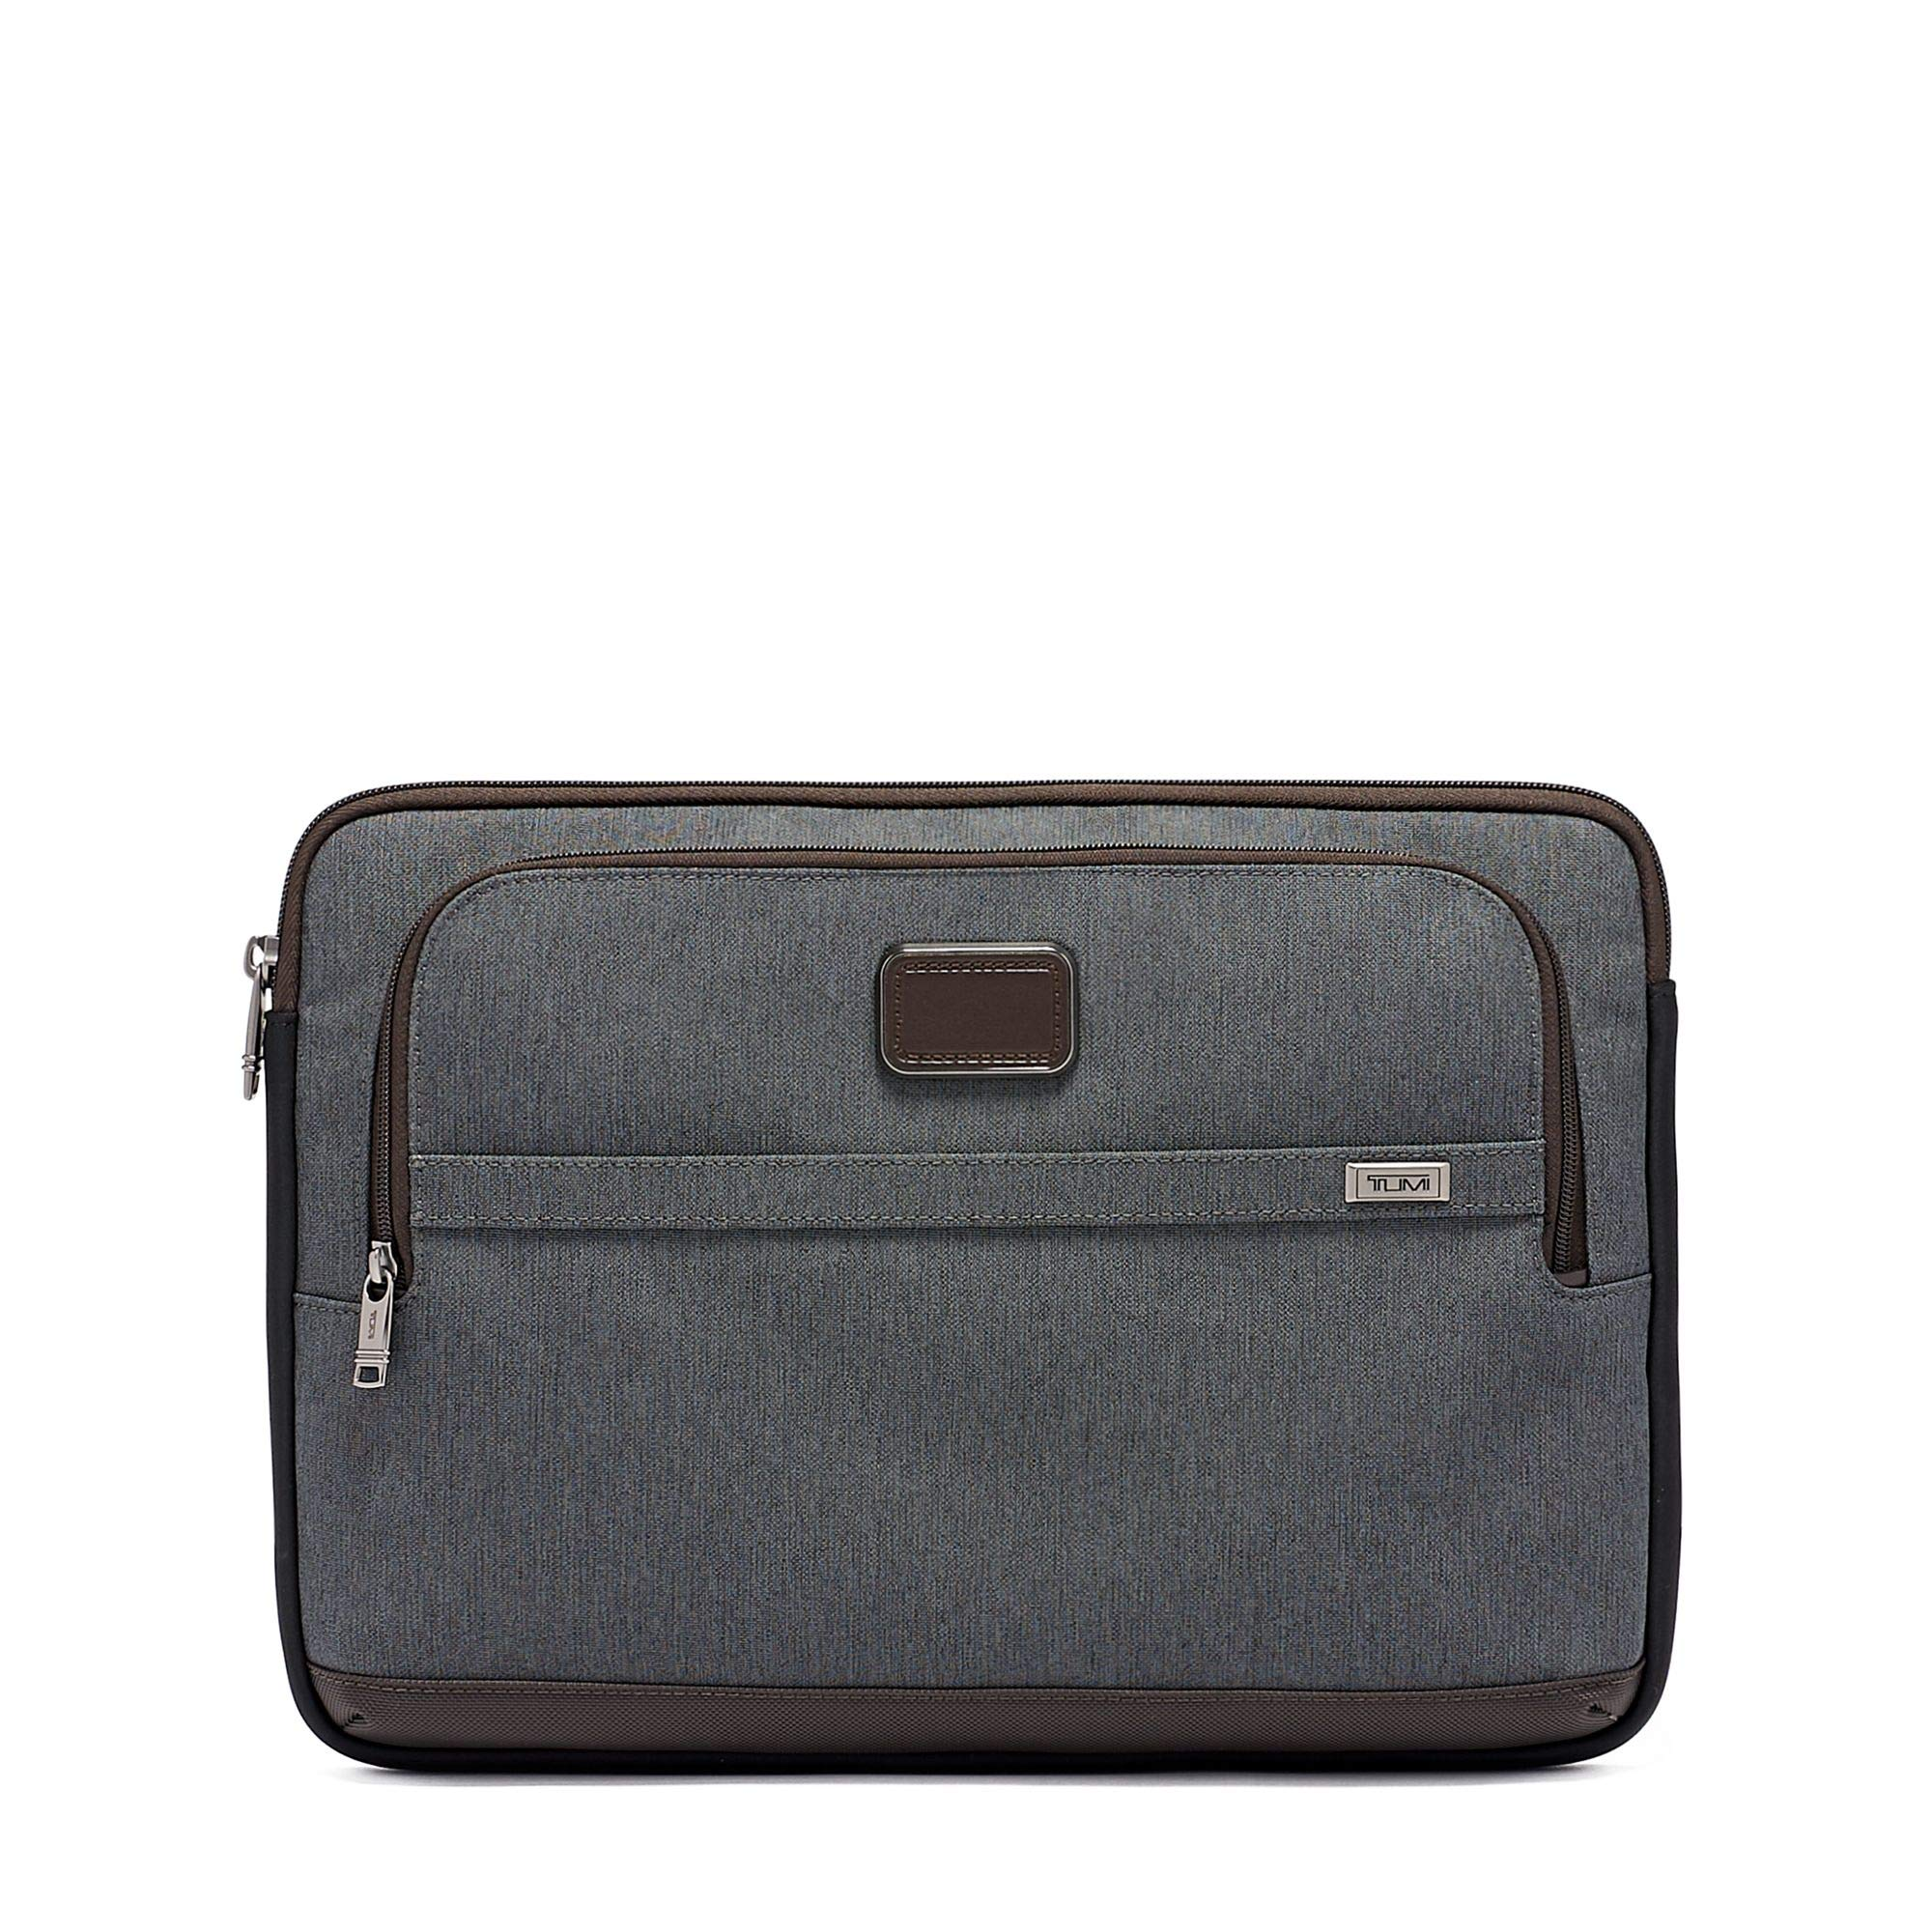 TUMI - Alpha 3 Large 15 Inch Laptop Cover - Computer Case for Men and Women - Anthracite by TUMI (Image #1)